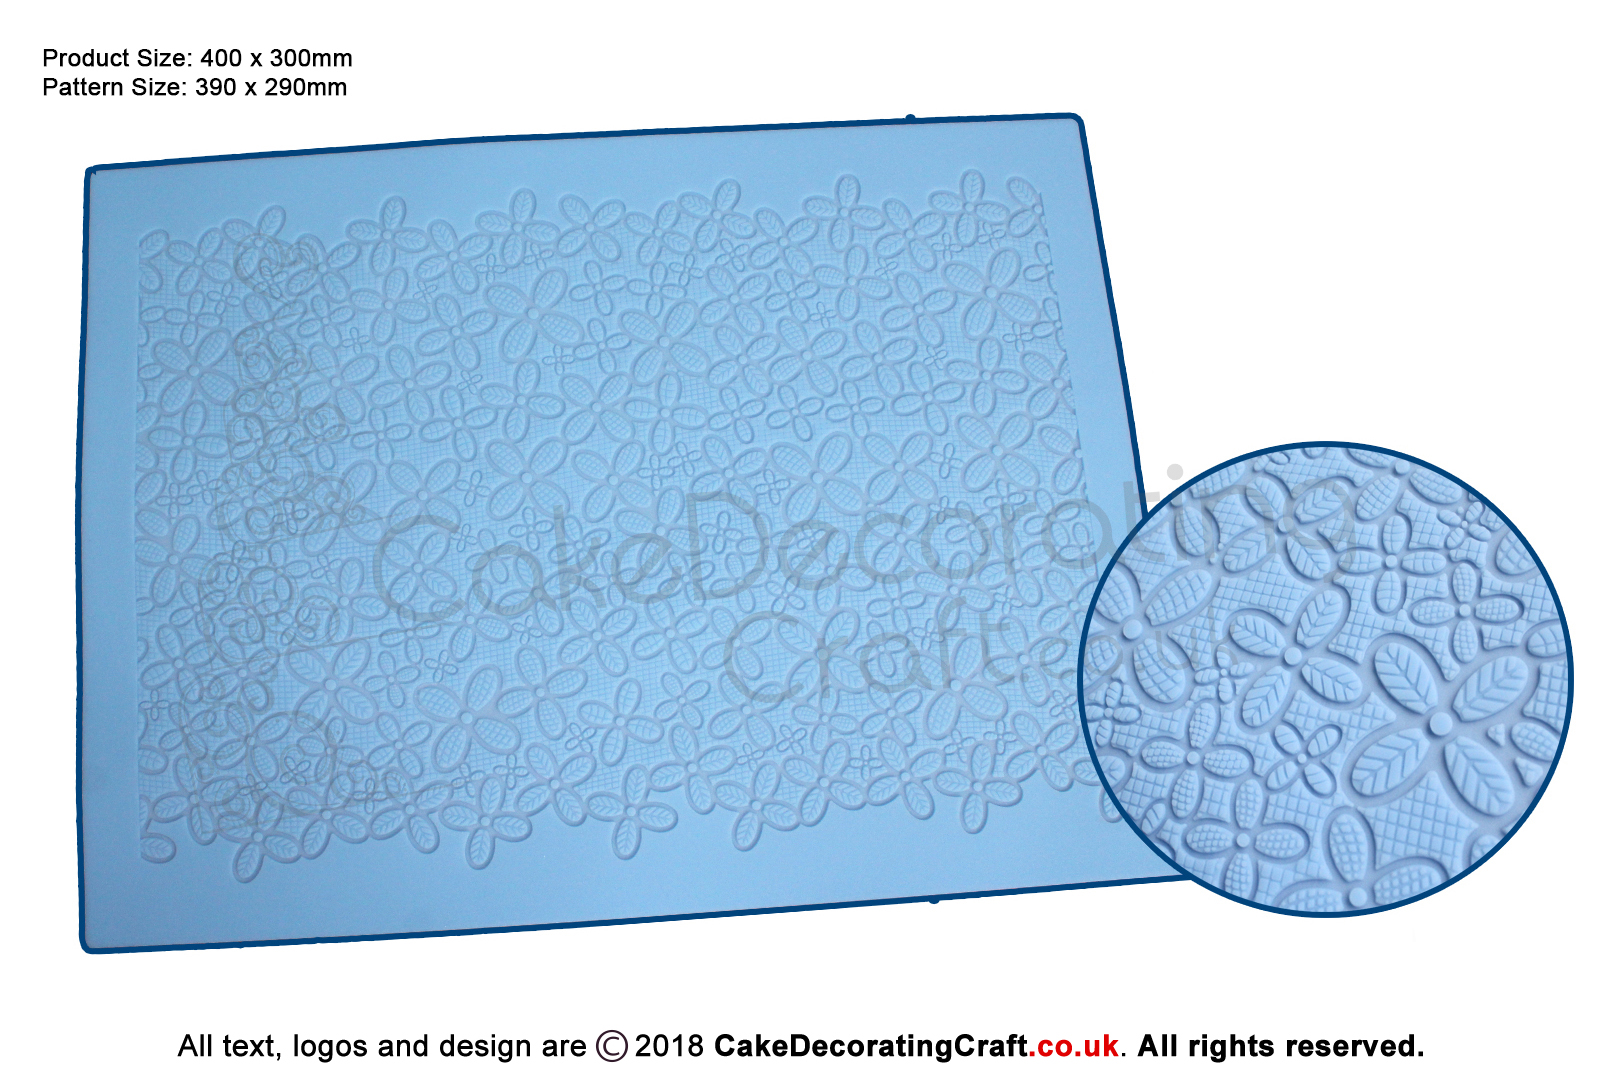 3d Daisy Lace Fabric Cake Lace Mats For Edible Cake Lace